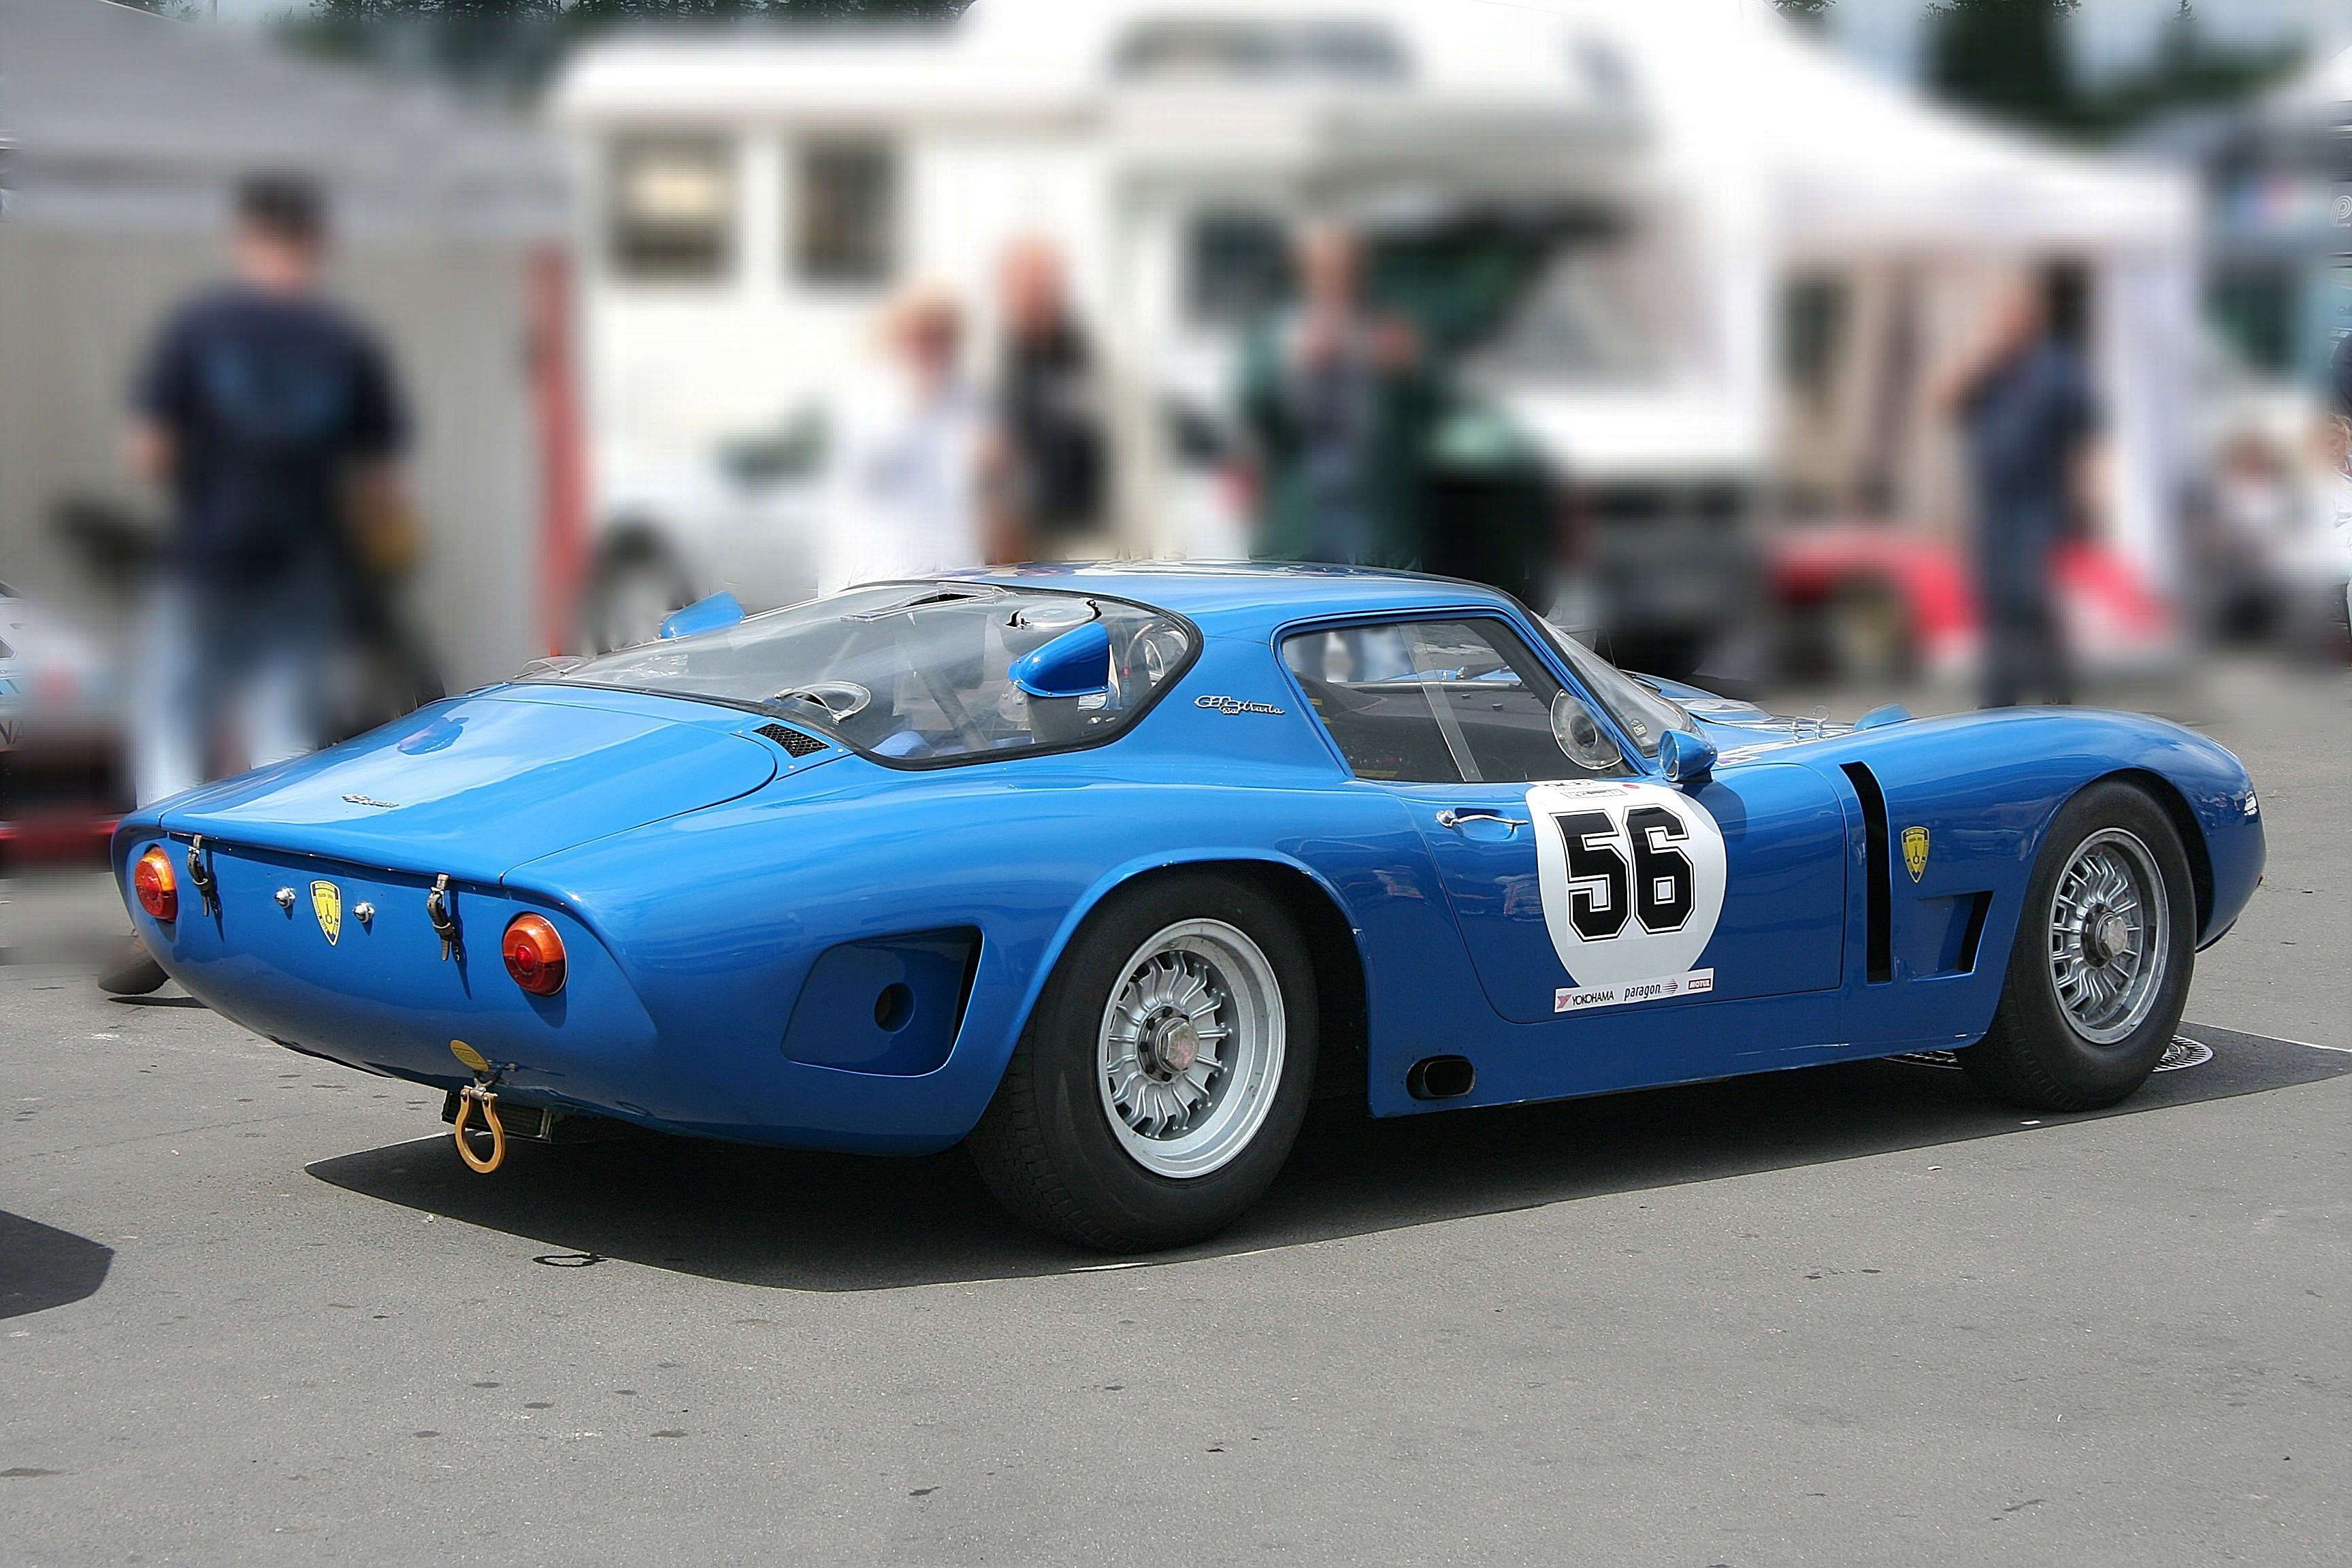 Bizzarrinis are still much more affordable; for decades, the presence of that Corvette engine kept Bizzarrini values well below those of the equivalent Ferrari, Lamborghini, or Maserati cars because purists and collectors considered it sacrilegious to have American parts in Italian cars.